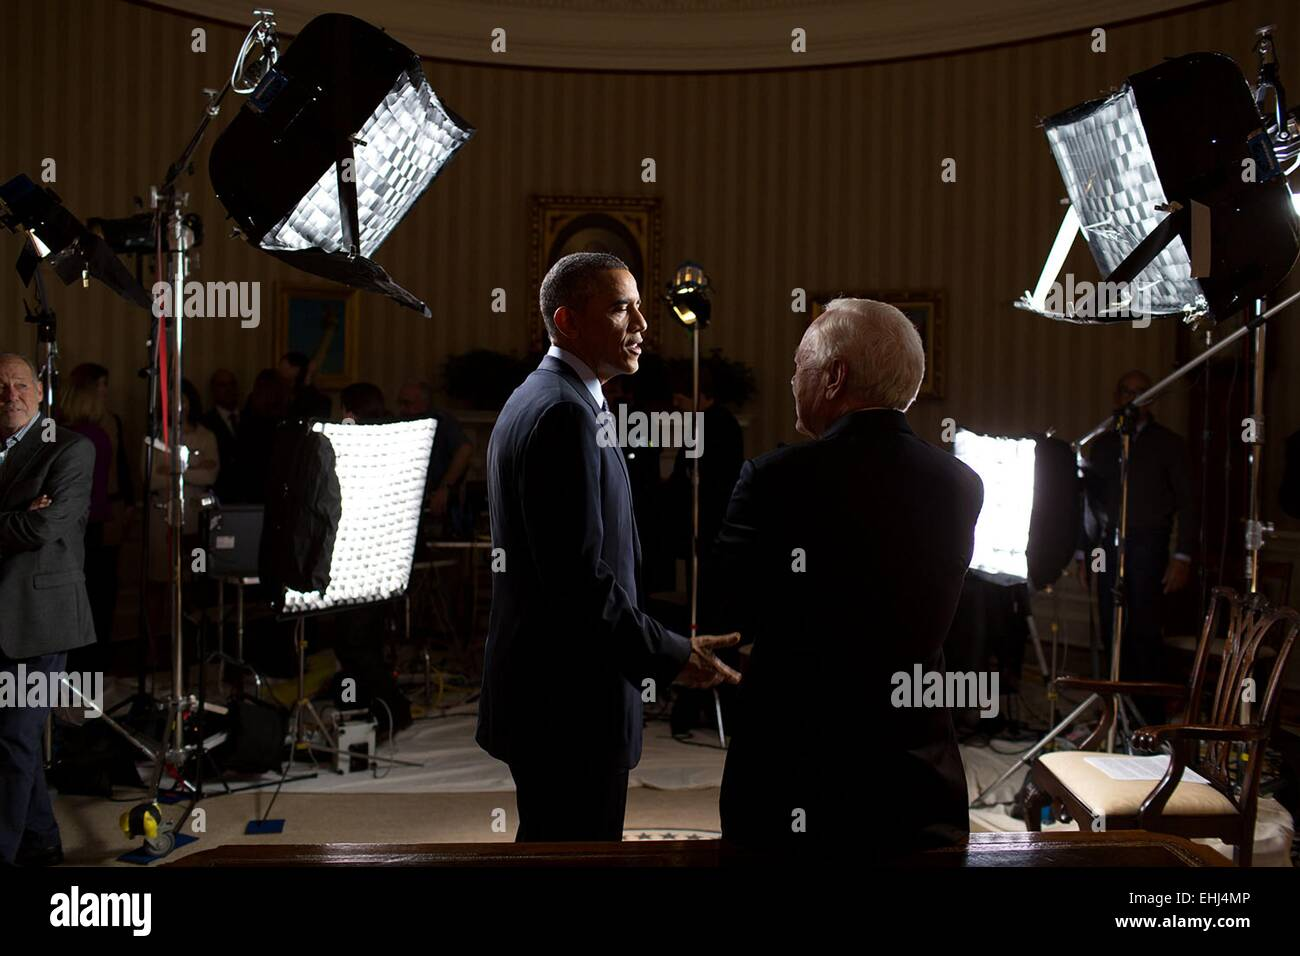 US President Barack Obama talks with Bob Schieffer after a CBS Face the Nation interview in the Oval Office of the - Stock Image